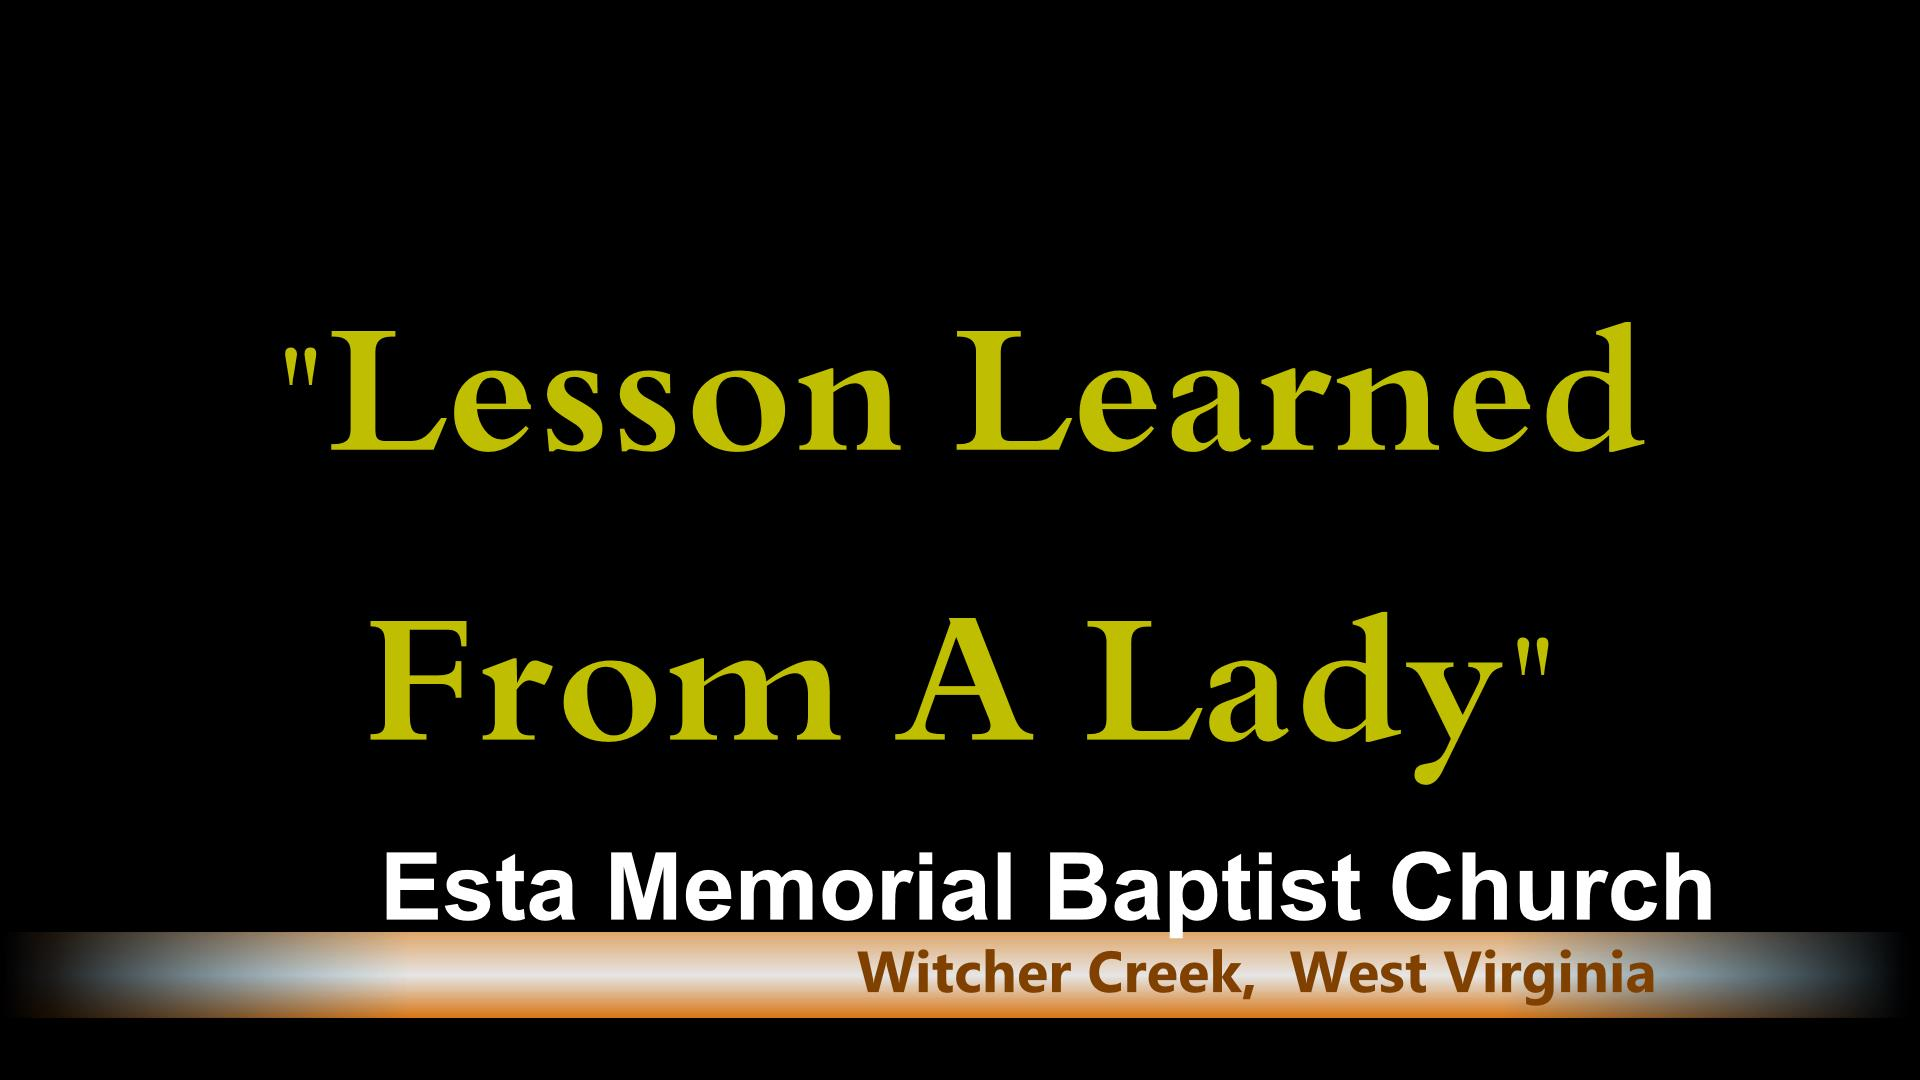 LESSONS LEARNED FROM A LADY